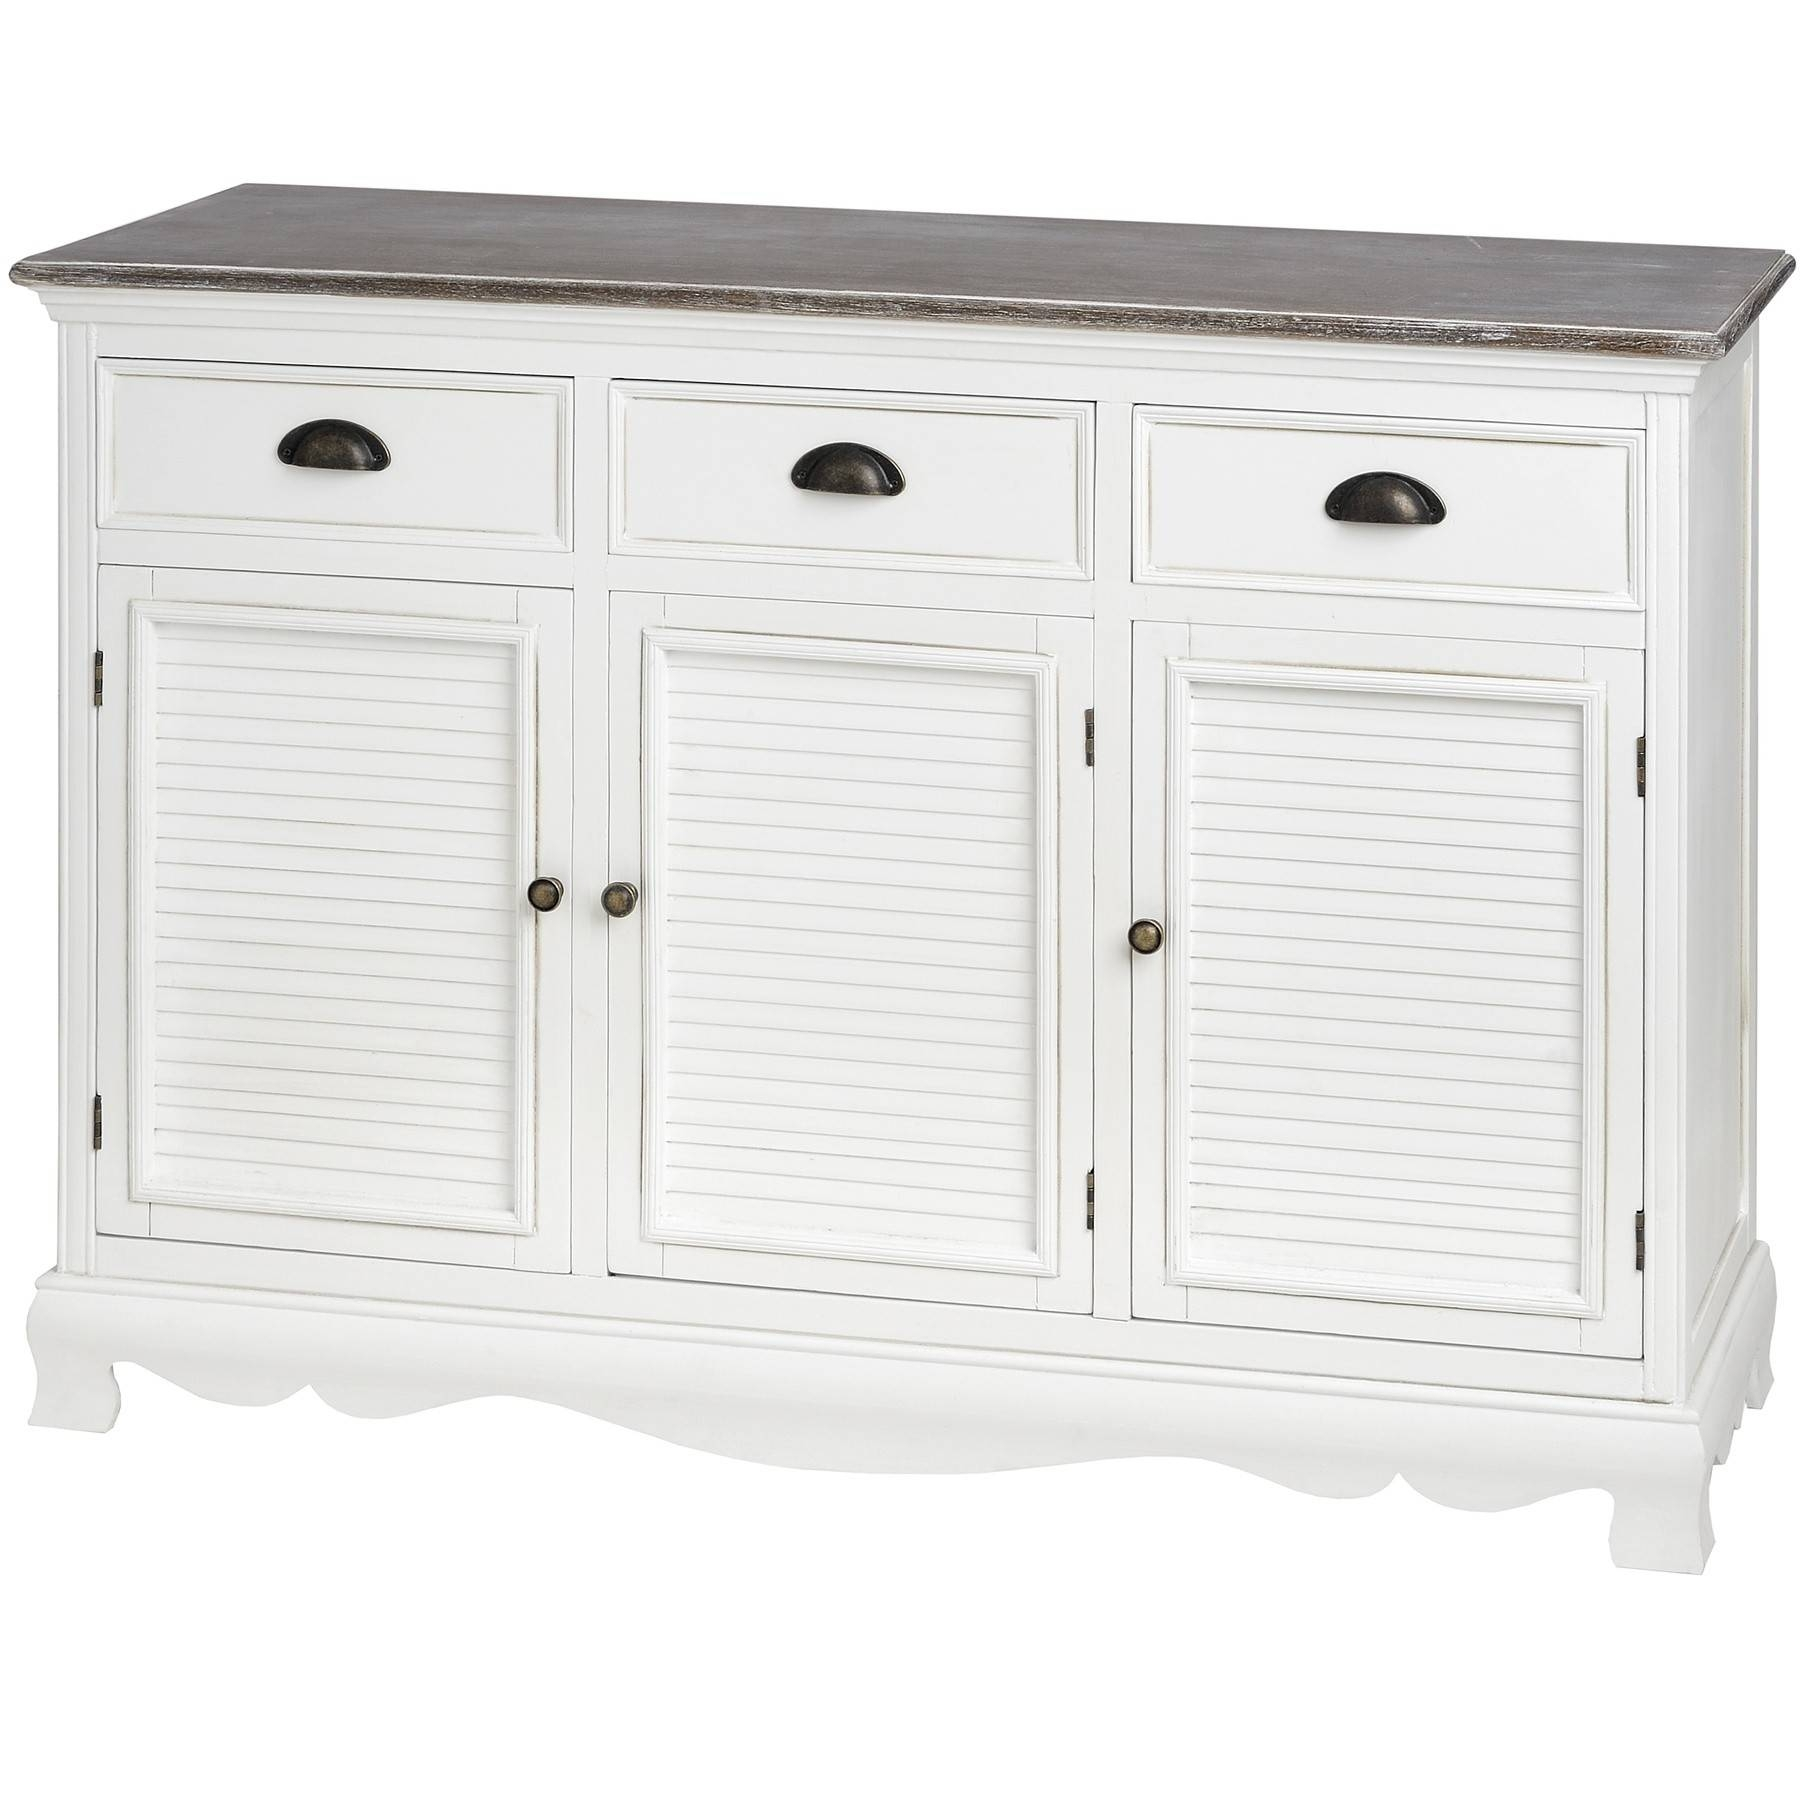 Louisiana Large White Sideboard With 3 Doors| Bedroom Furniture Direct In Large White Sideboard (#12 of 20)